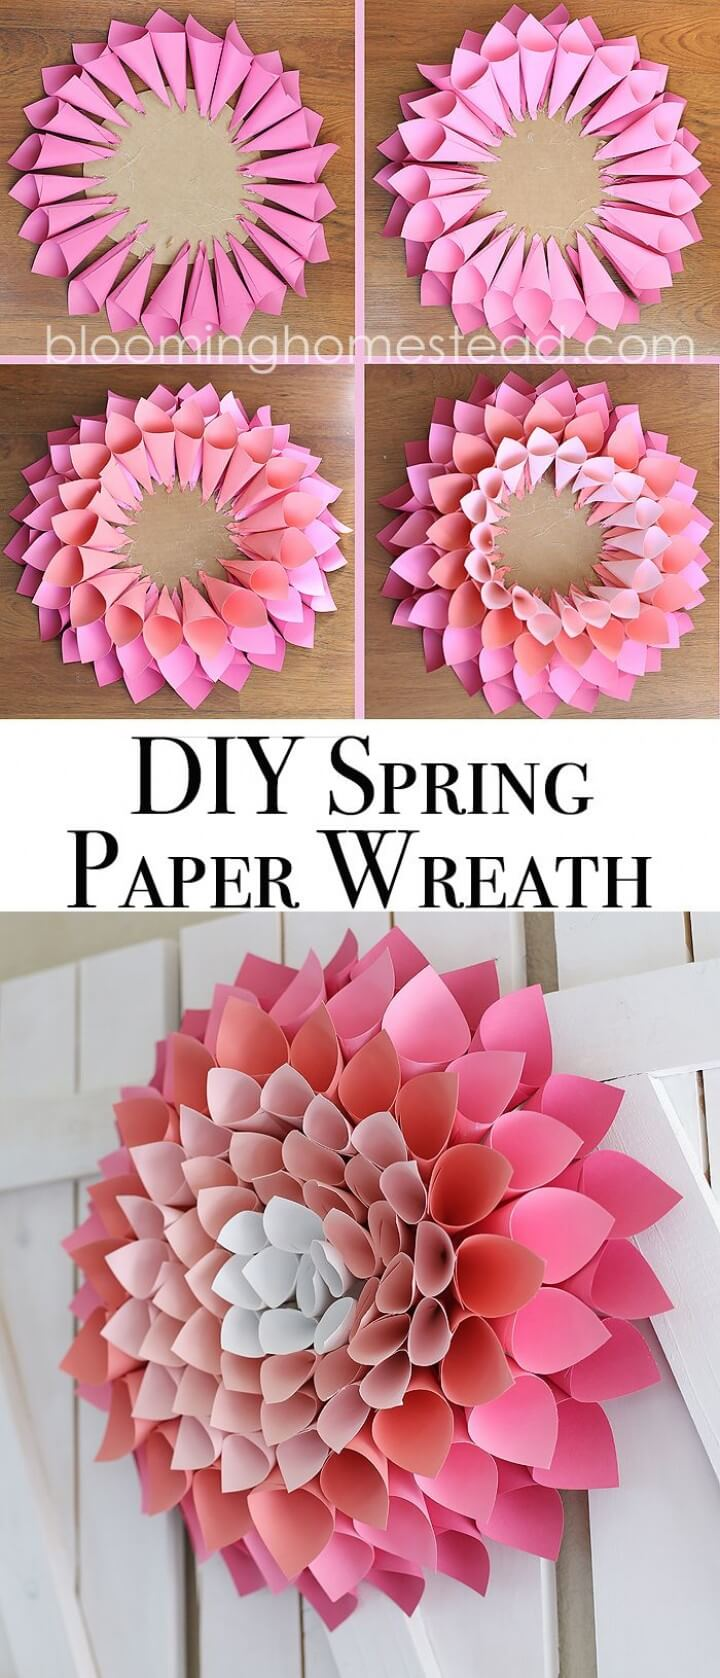 Simple Paper Cones Make a DIY Dahlia